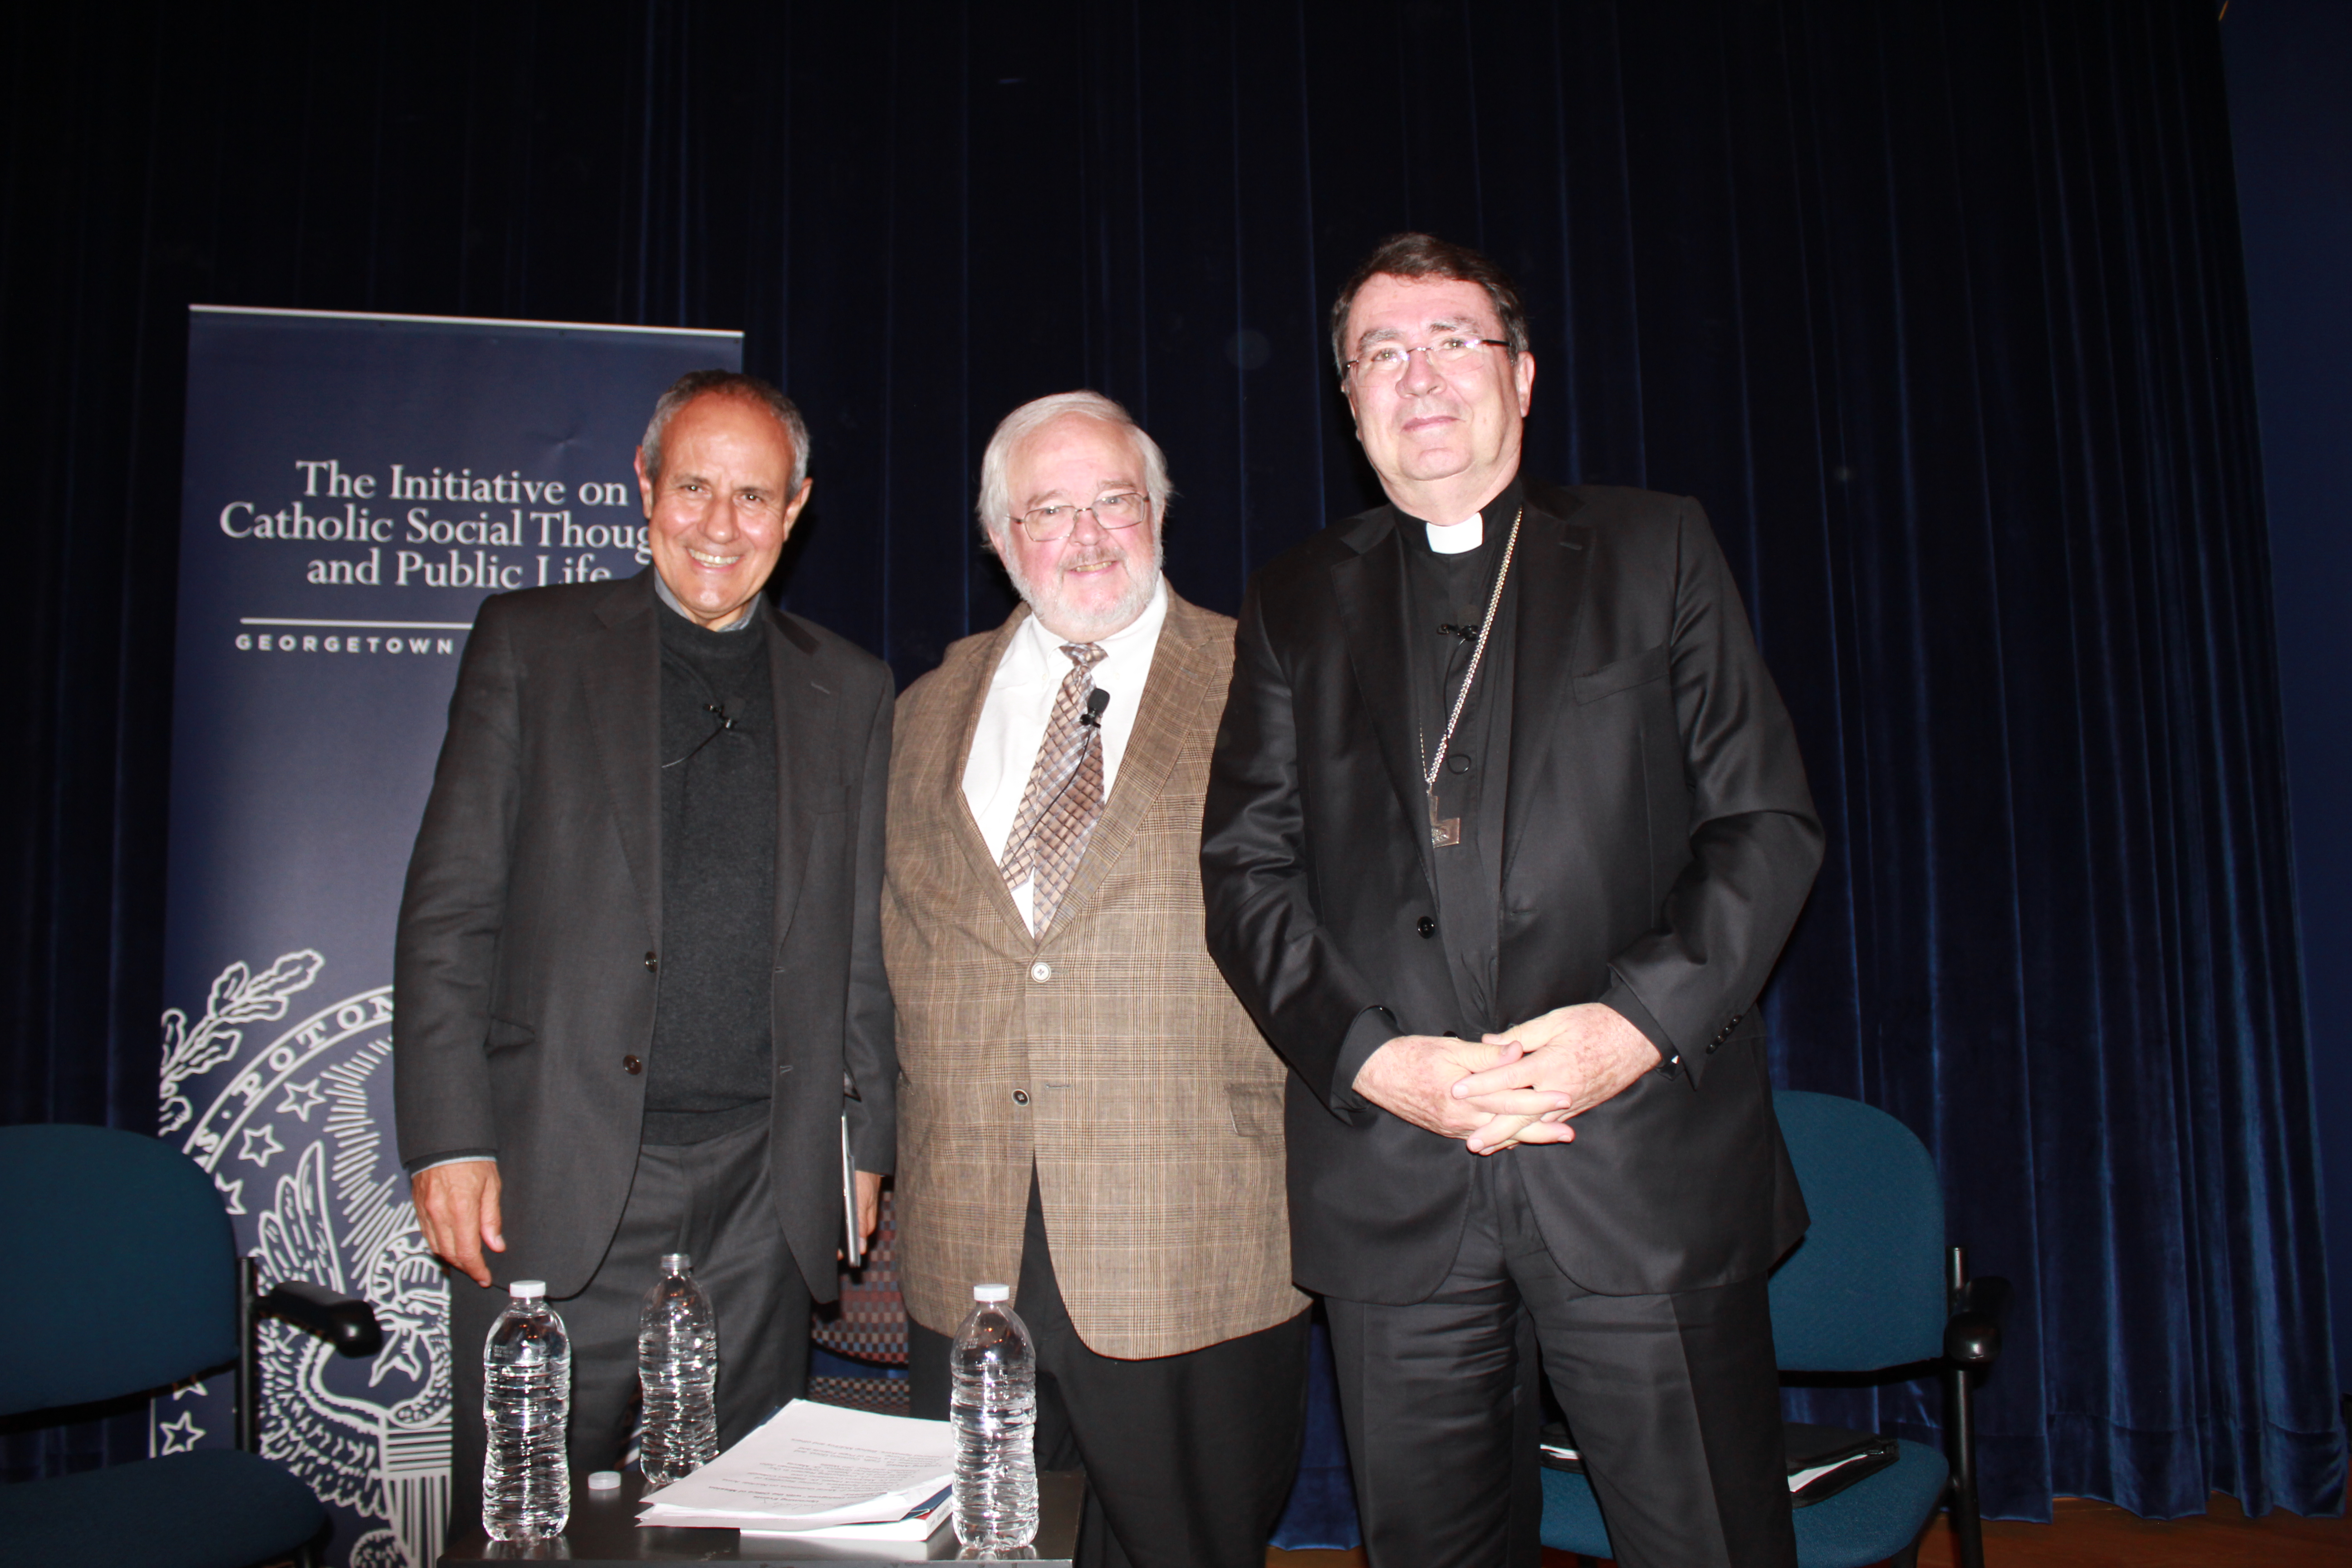 Father Carrón, John Carr, and Archbishop Pierre stand for a group photo after a successful and invigorating discussion.